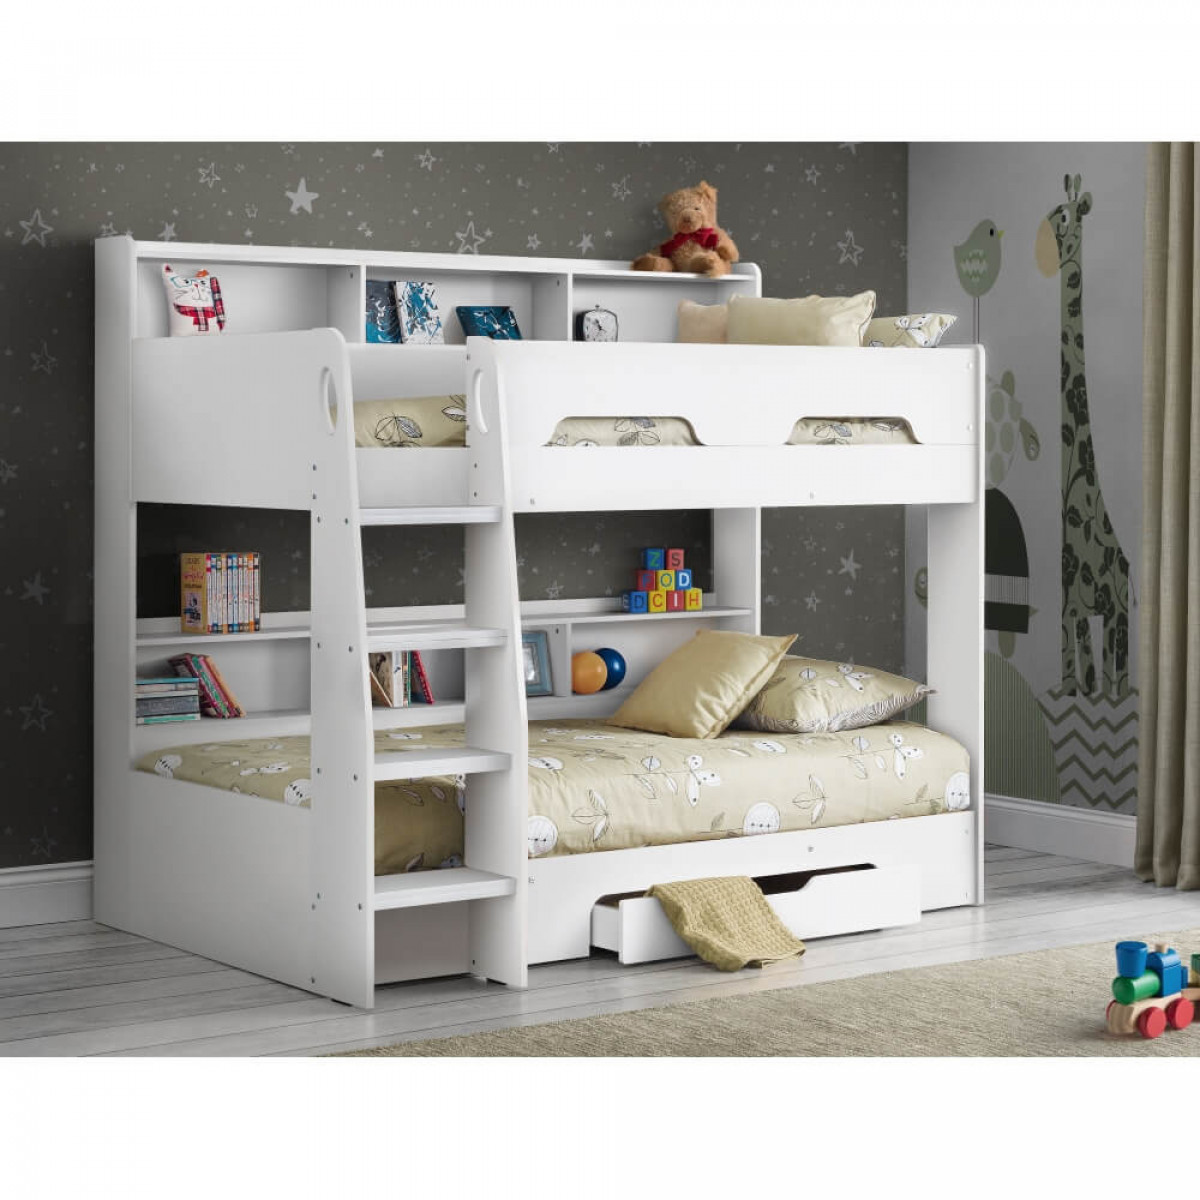 bunk beds orion white bunk bed julian bowen ori002. Black Bedroom Furniture Sets. Home Design Ideas